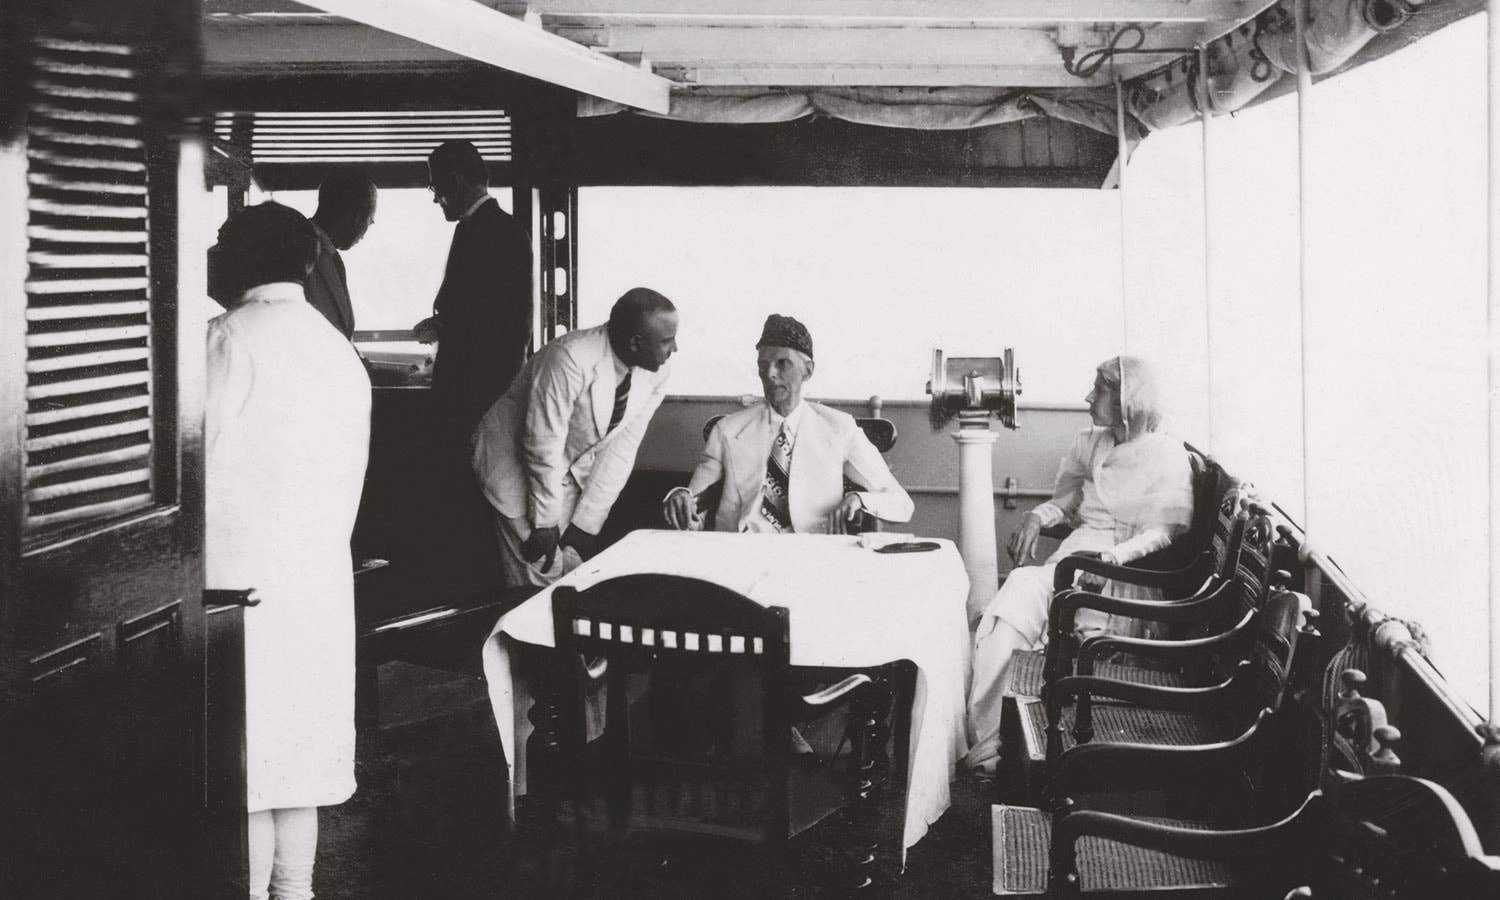 Quaid-i-Azam Mohammad Ali Jinnah and Miss Fatima Jinnah enjoying a boat ride, possibly in Dhaka, in the early 1940s. Standing on the left [wearing sherwani] is Khawaja Nazimuddin, who was at the time the Premier of Bengal. | Photo: The Press Information Department, Ministry of Information, Broadcasting & National Heritage, Islamabad (PID)